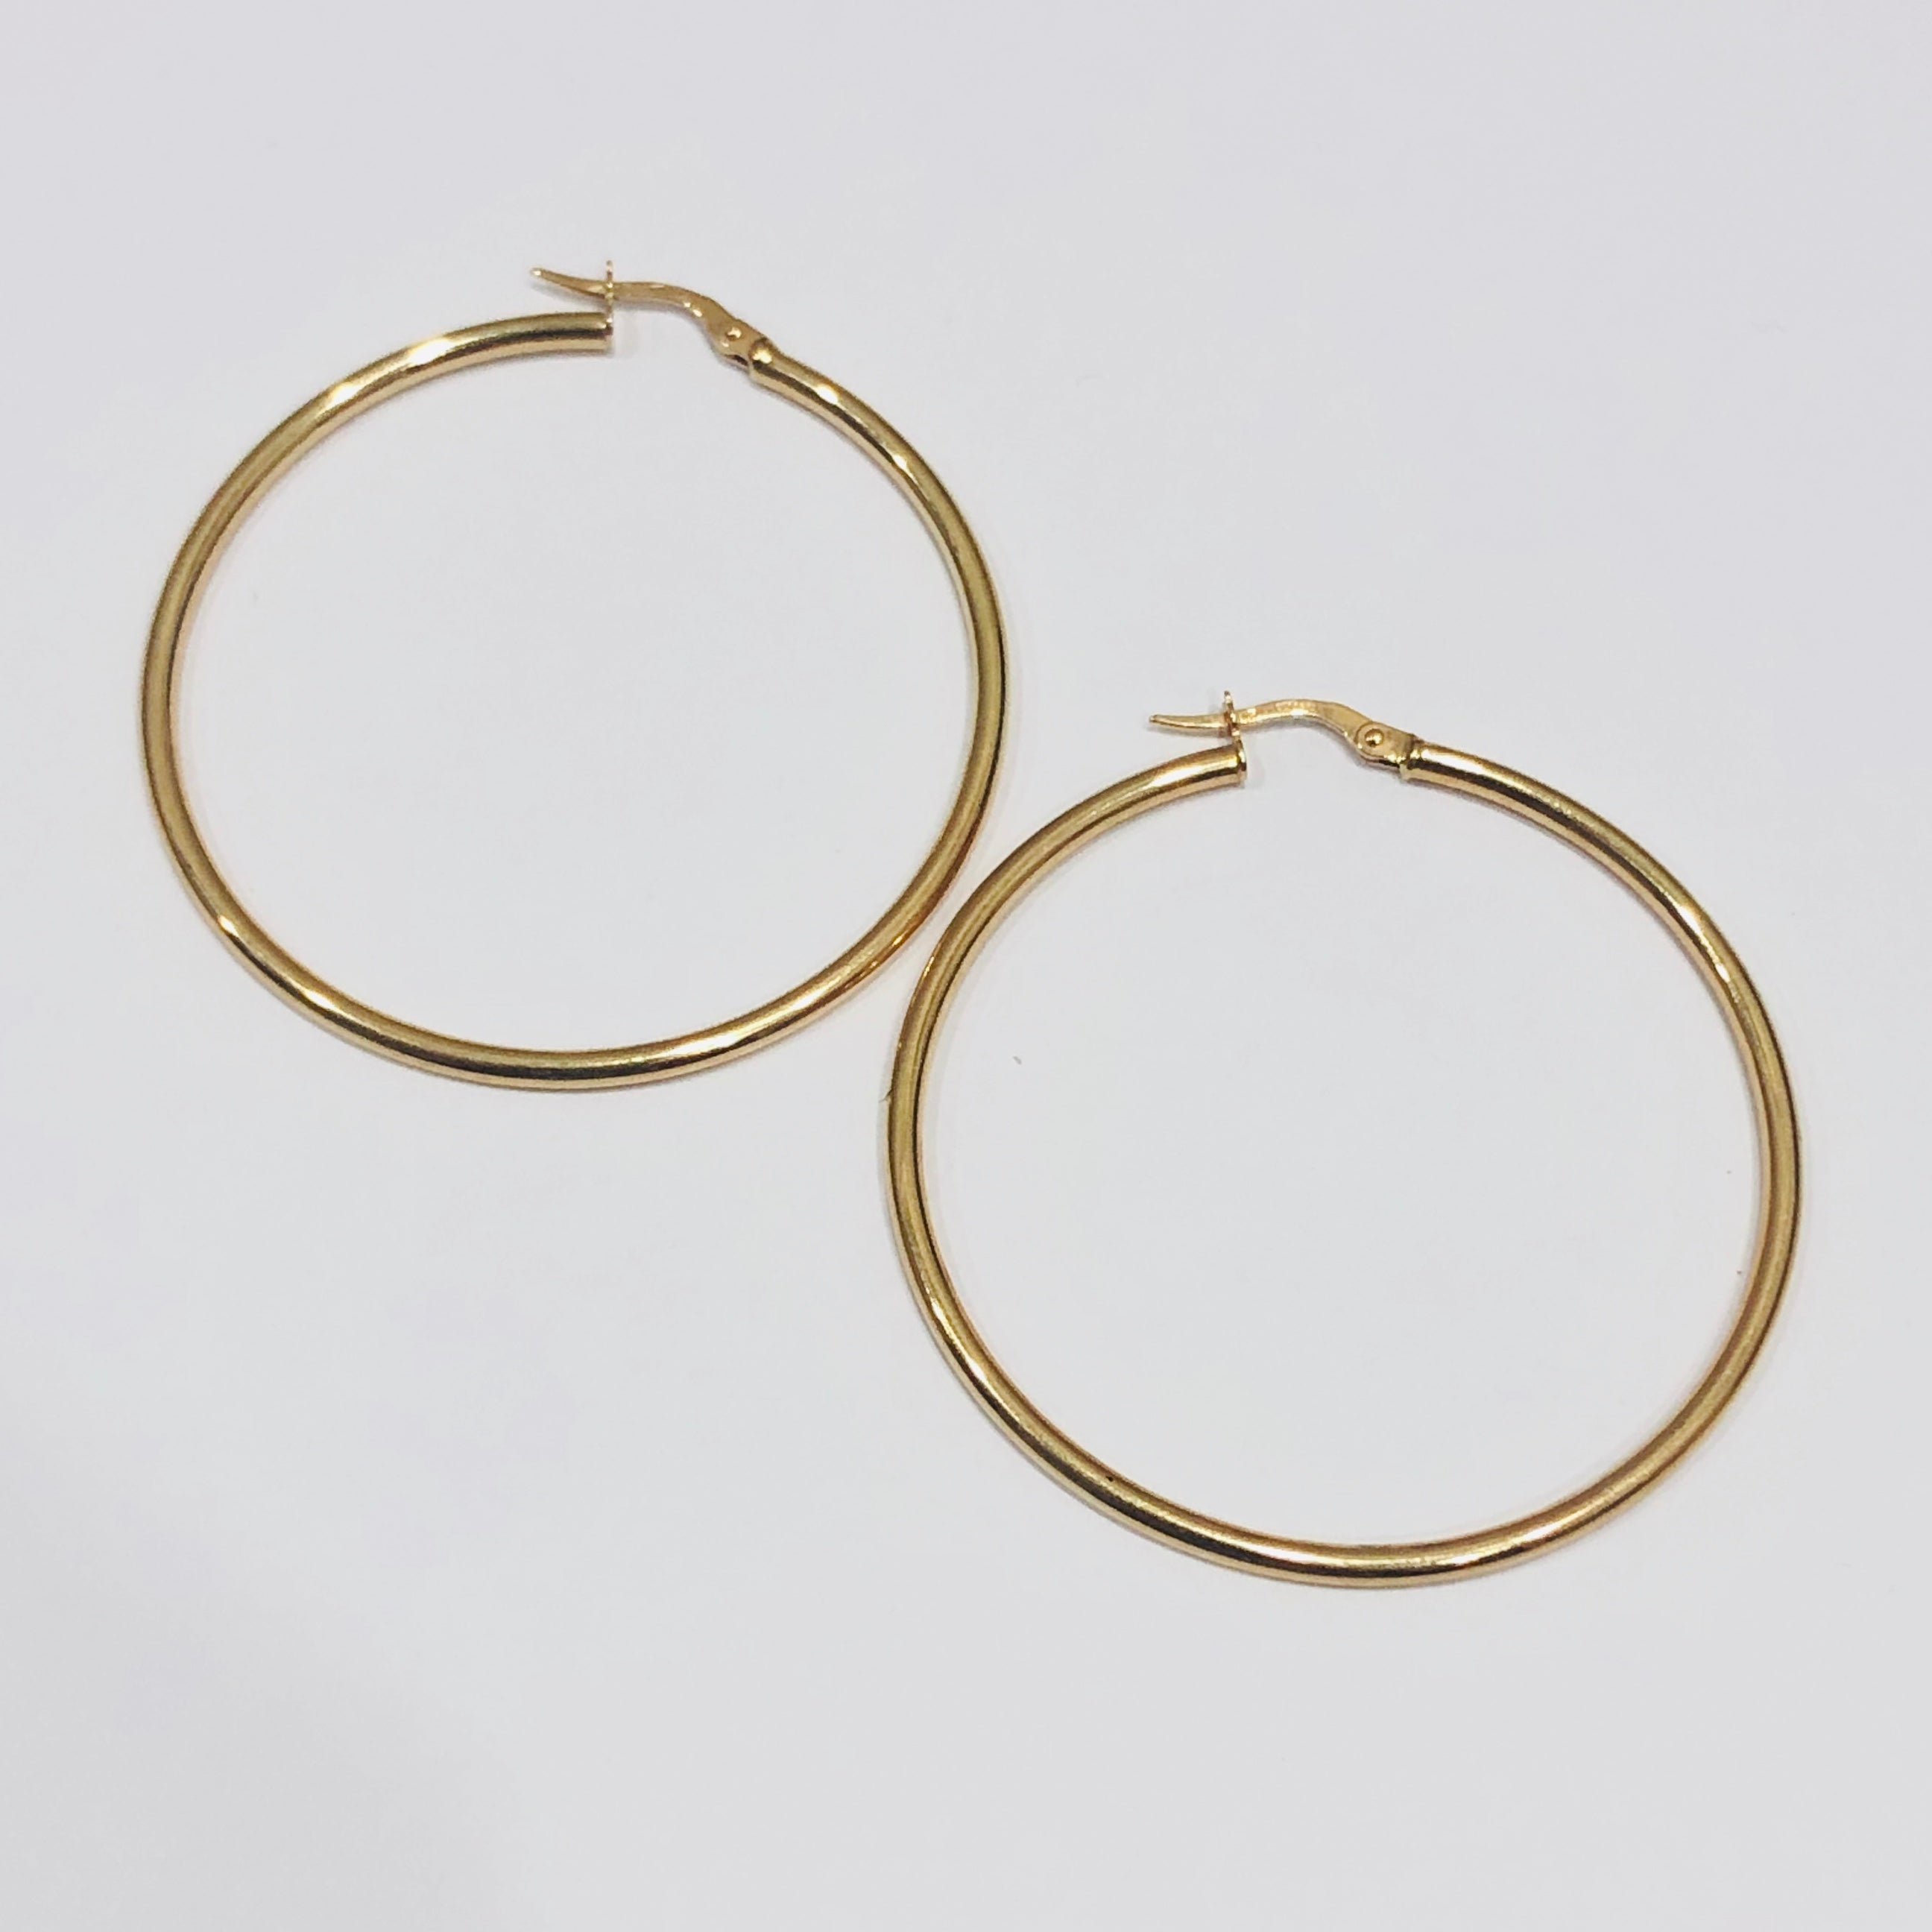 9ct Gold Hoop Earrings 41mm x 2mm - 012